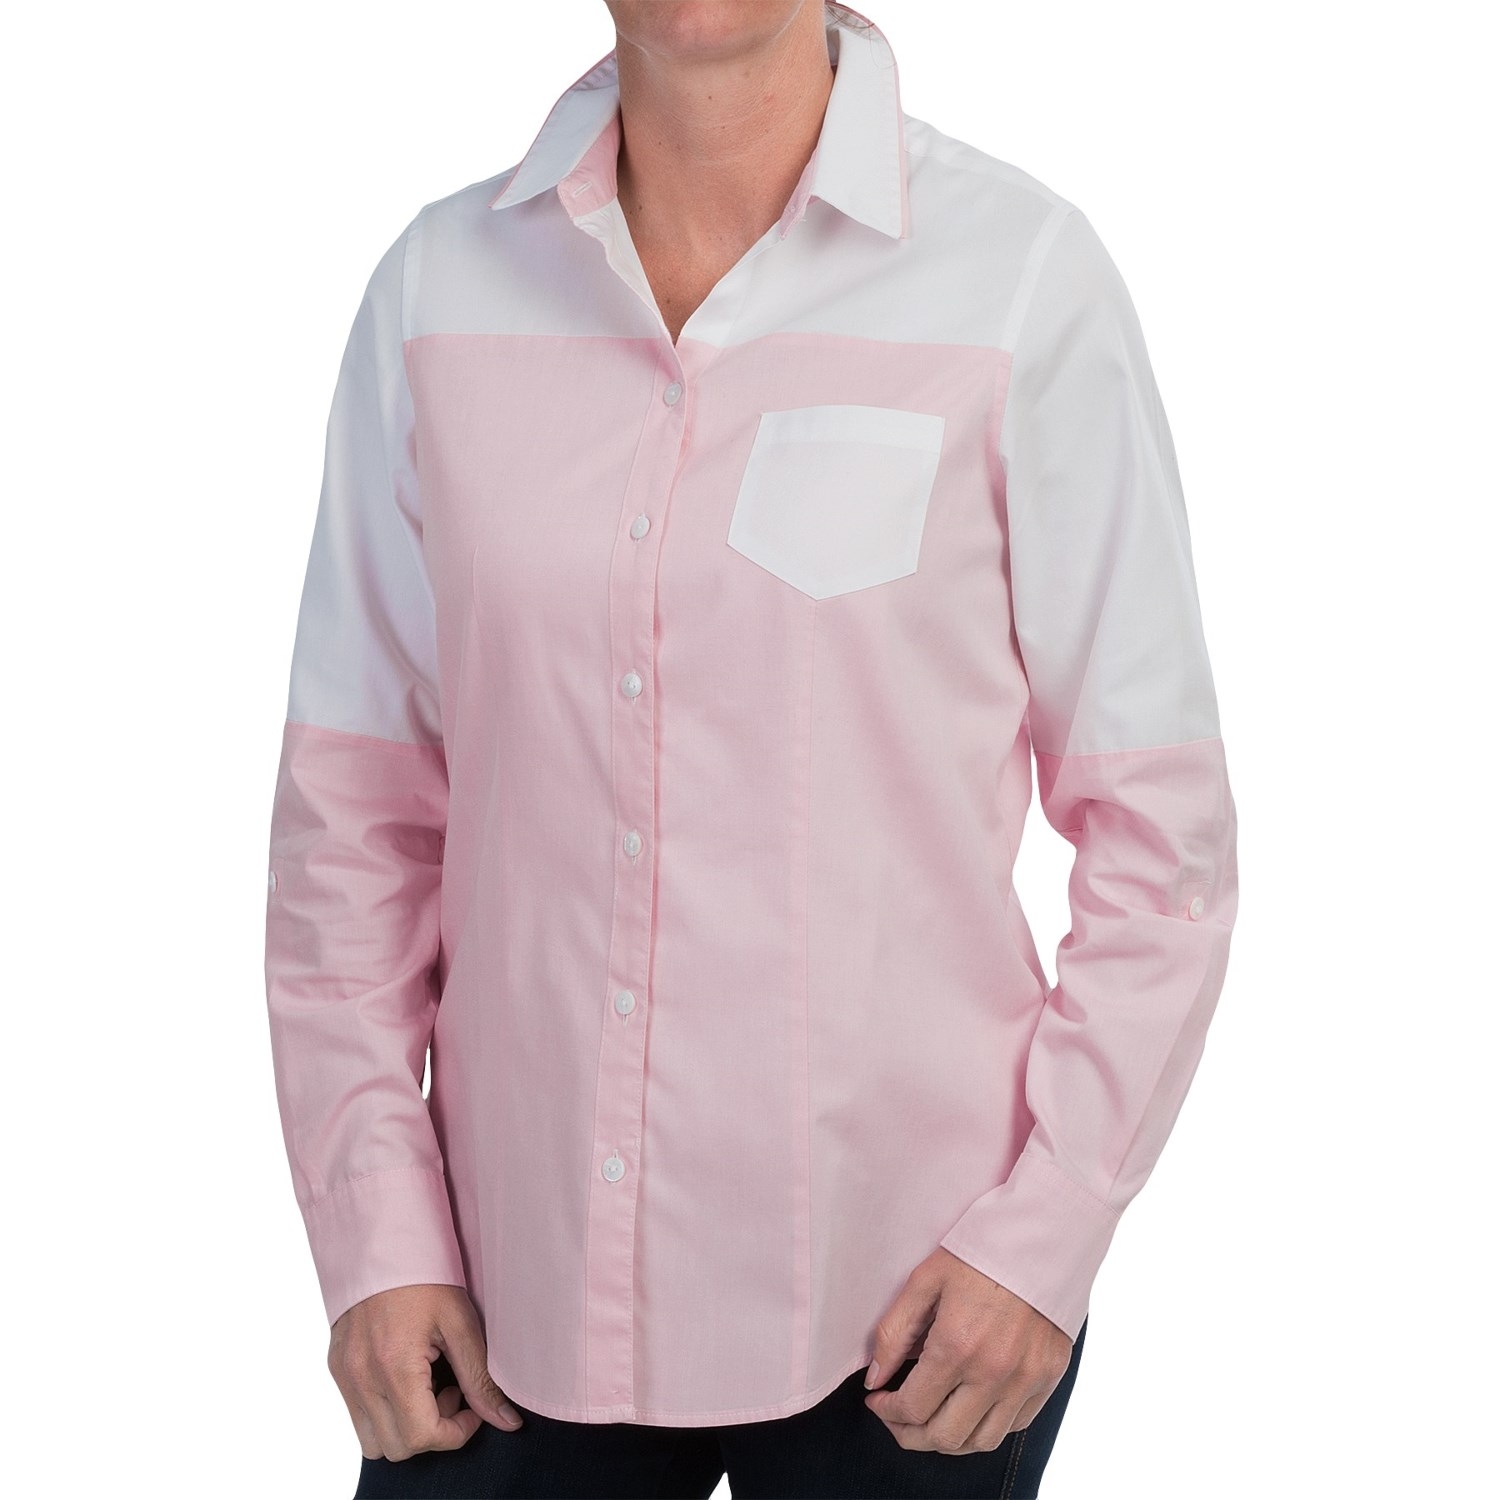 Foxcroft Fitted Button Down Shirt For Women 9463r Save 75